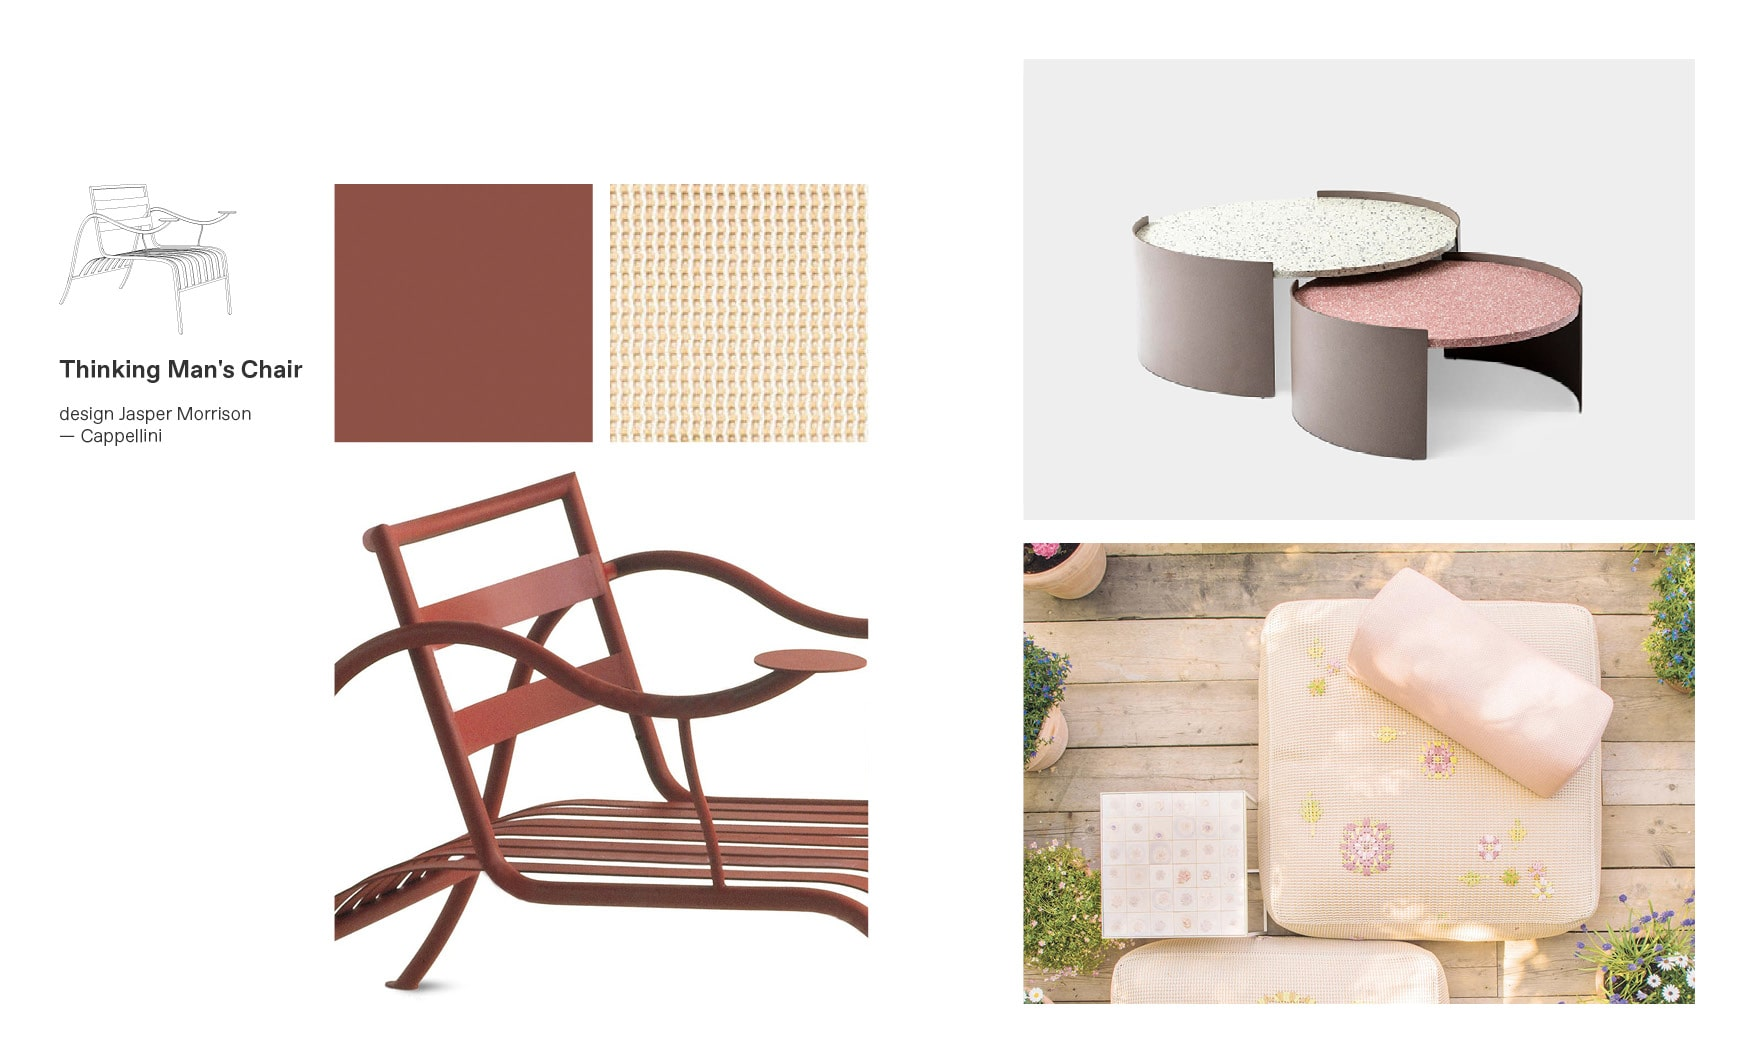 Cappellini chairs and Thinking Man's Chair moodboard composition